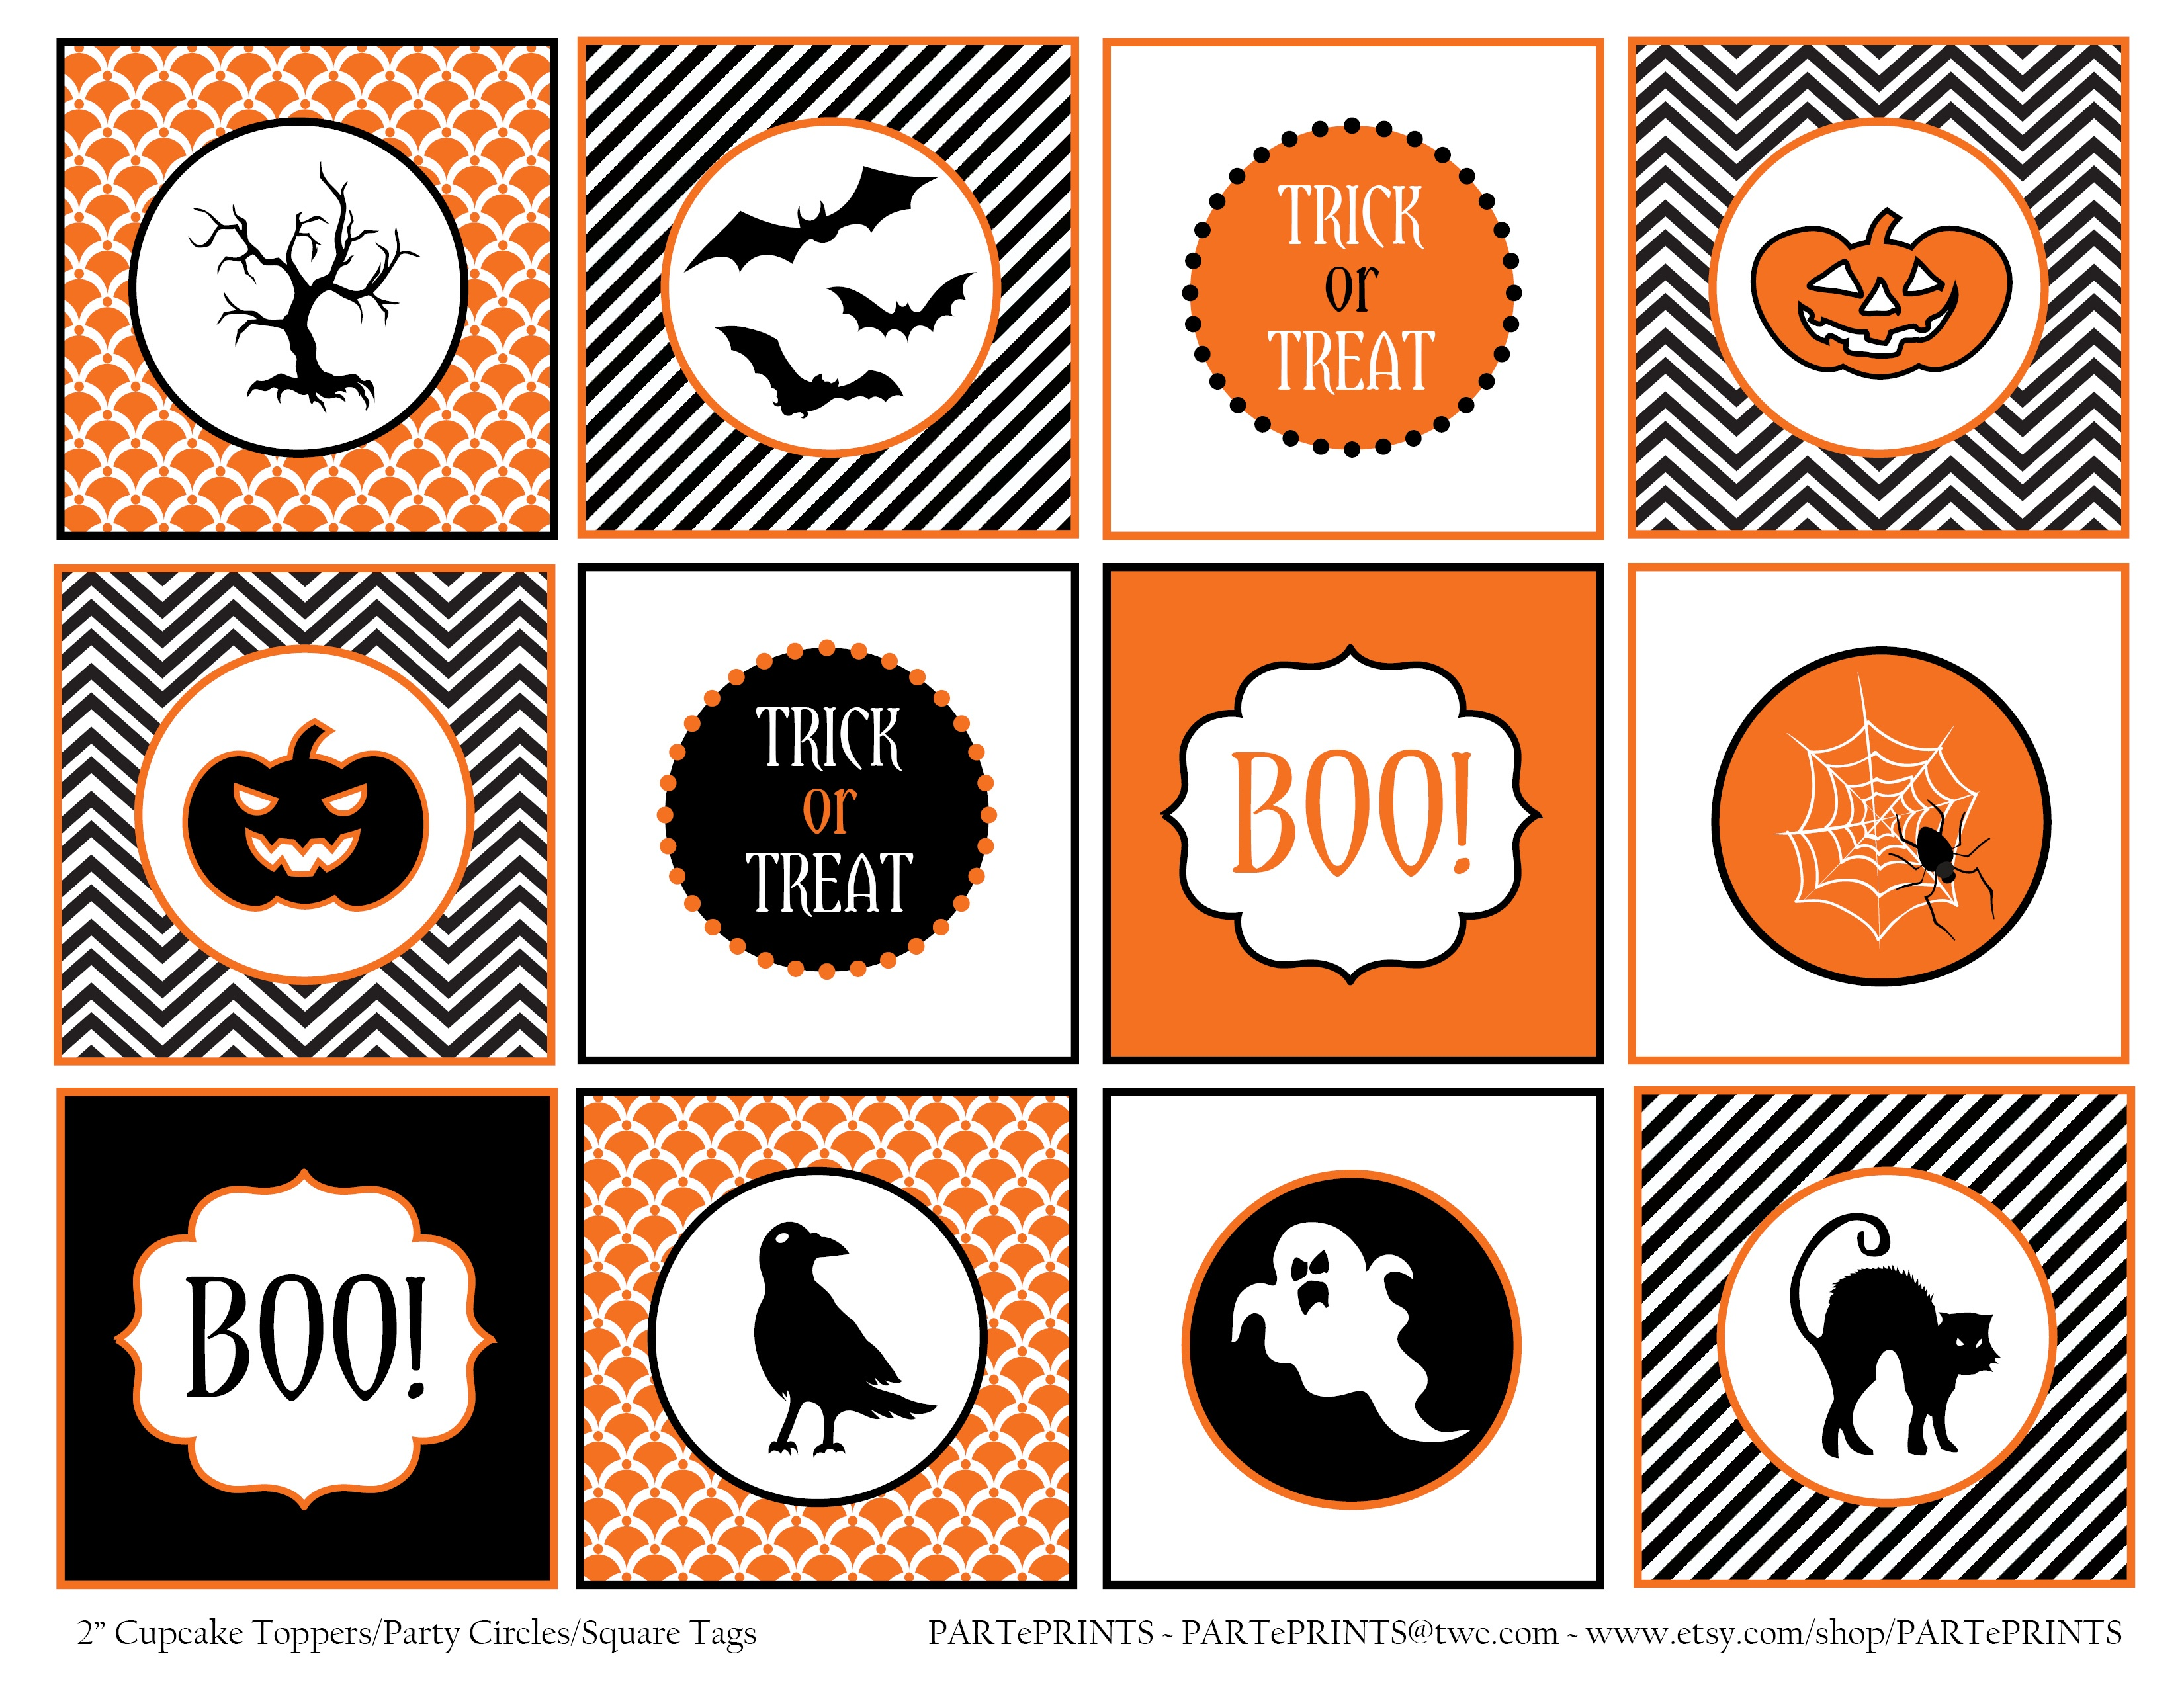 Free Halloween Printables From Parteprints | Catch My Party - Free Printable Halloween Labels